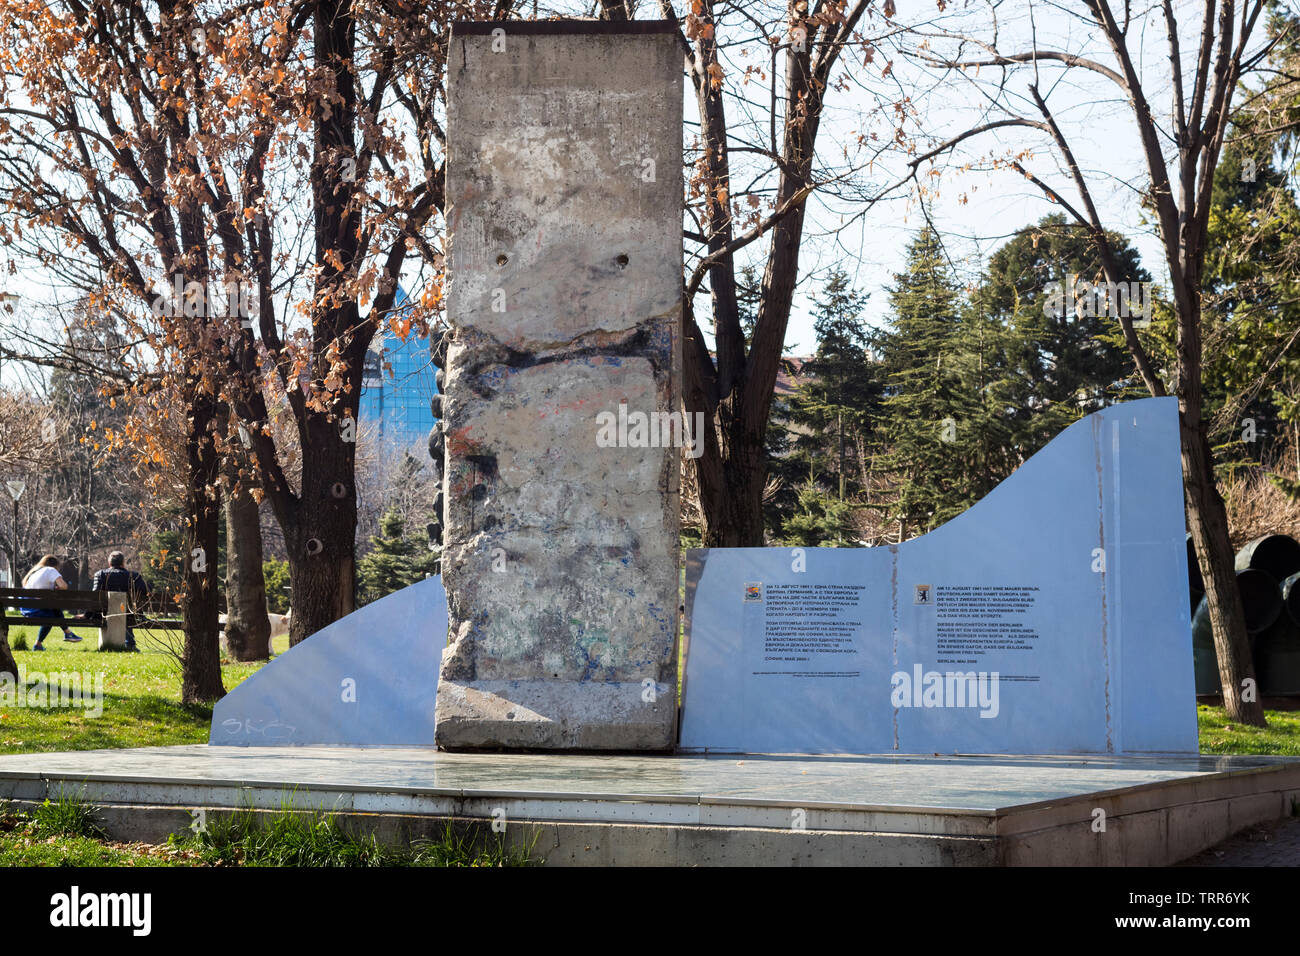 A section of the Berlin Wall, as part of a memorial, in the park in front of the National Palace of Culture (NDK) in the center of Sofia, Bulgaria - Stock Image